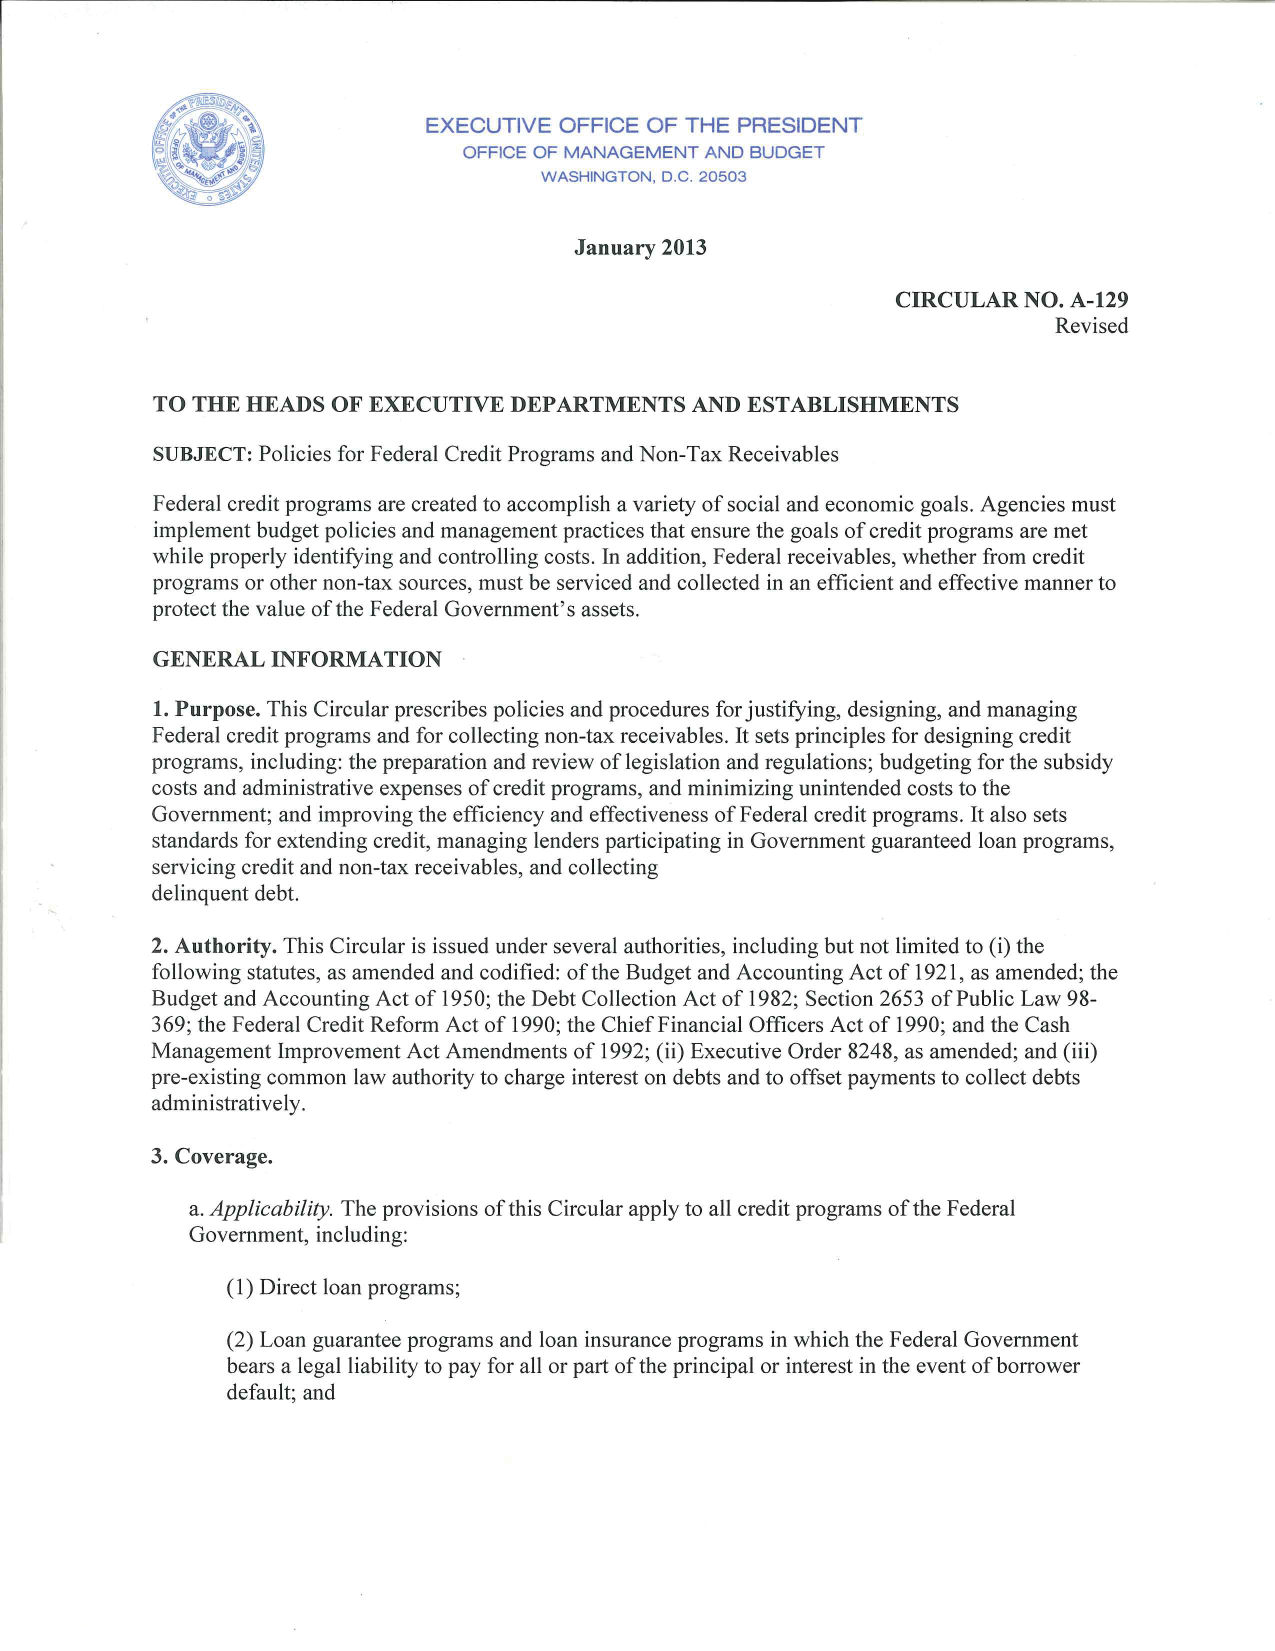 Circular A 129 Transmittal Letter | The White House